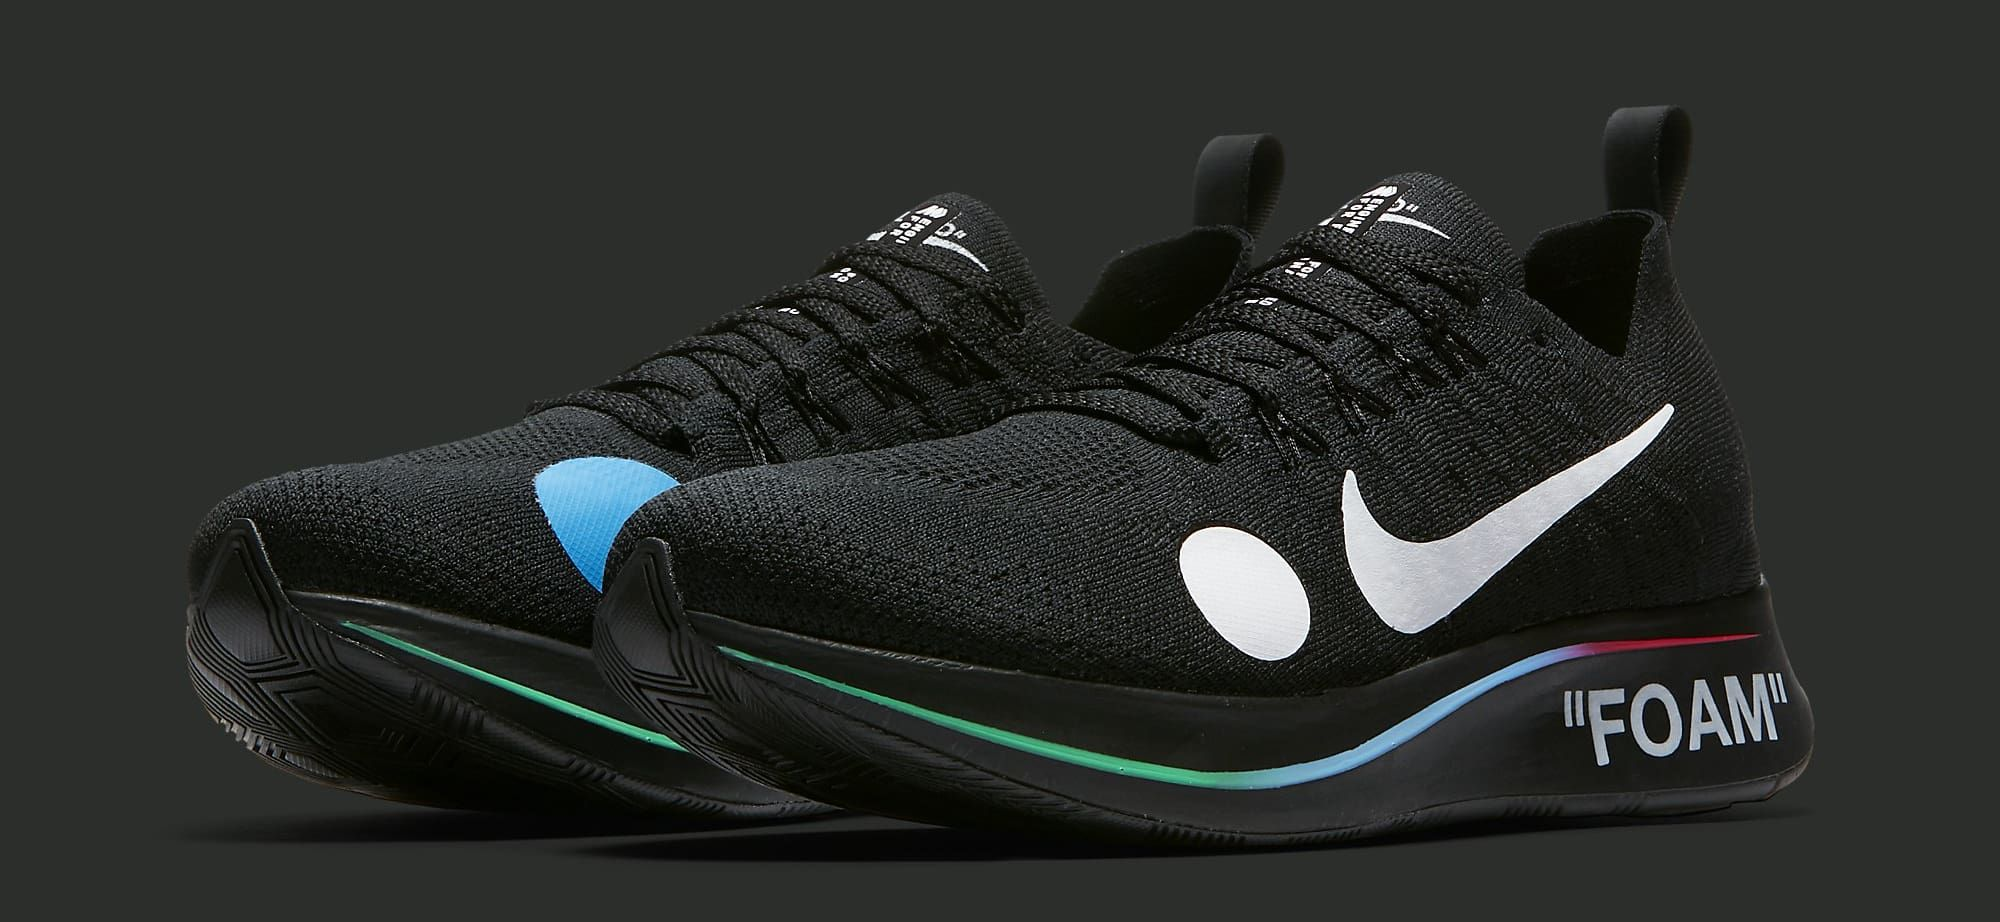 a36e1ff18 Off-White x Nike Zoom Fly Mercurial Flyknit  Black  AO2115-001 (Pair ...